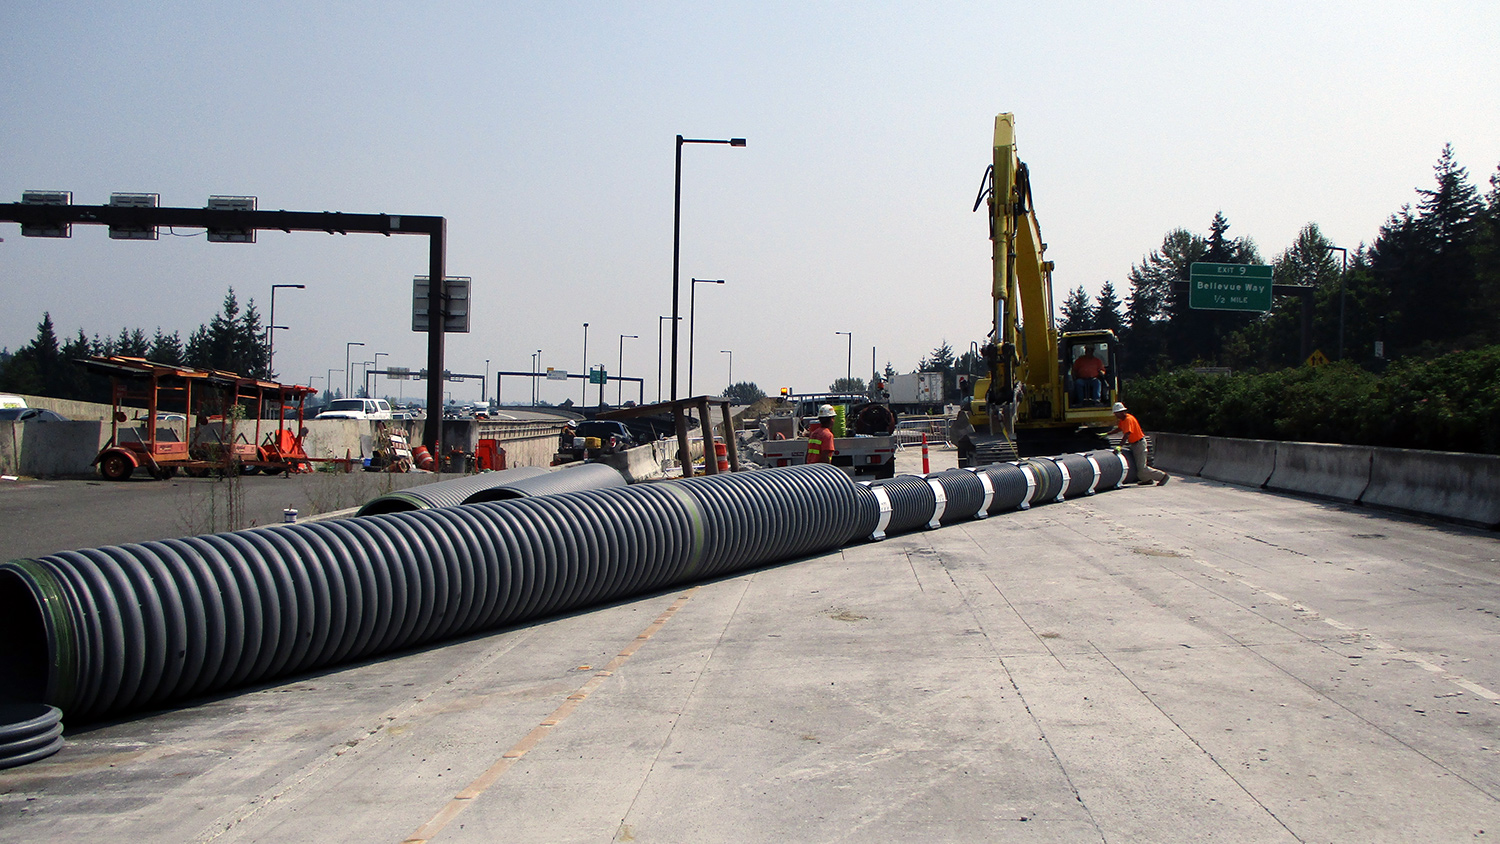 Crews install protective casing for utility lines near the future Mercer Island station.